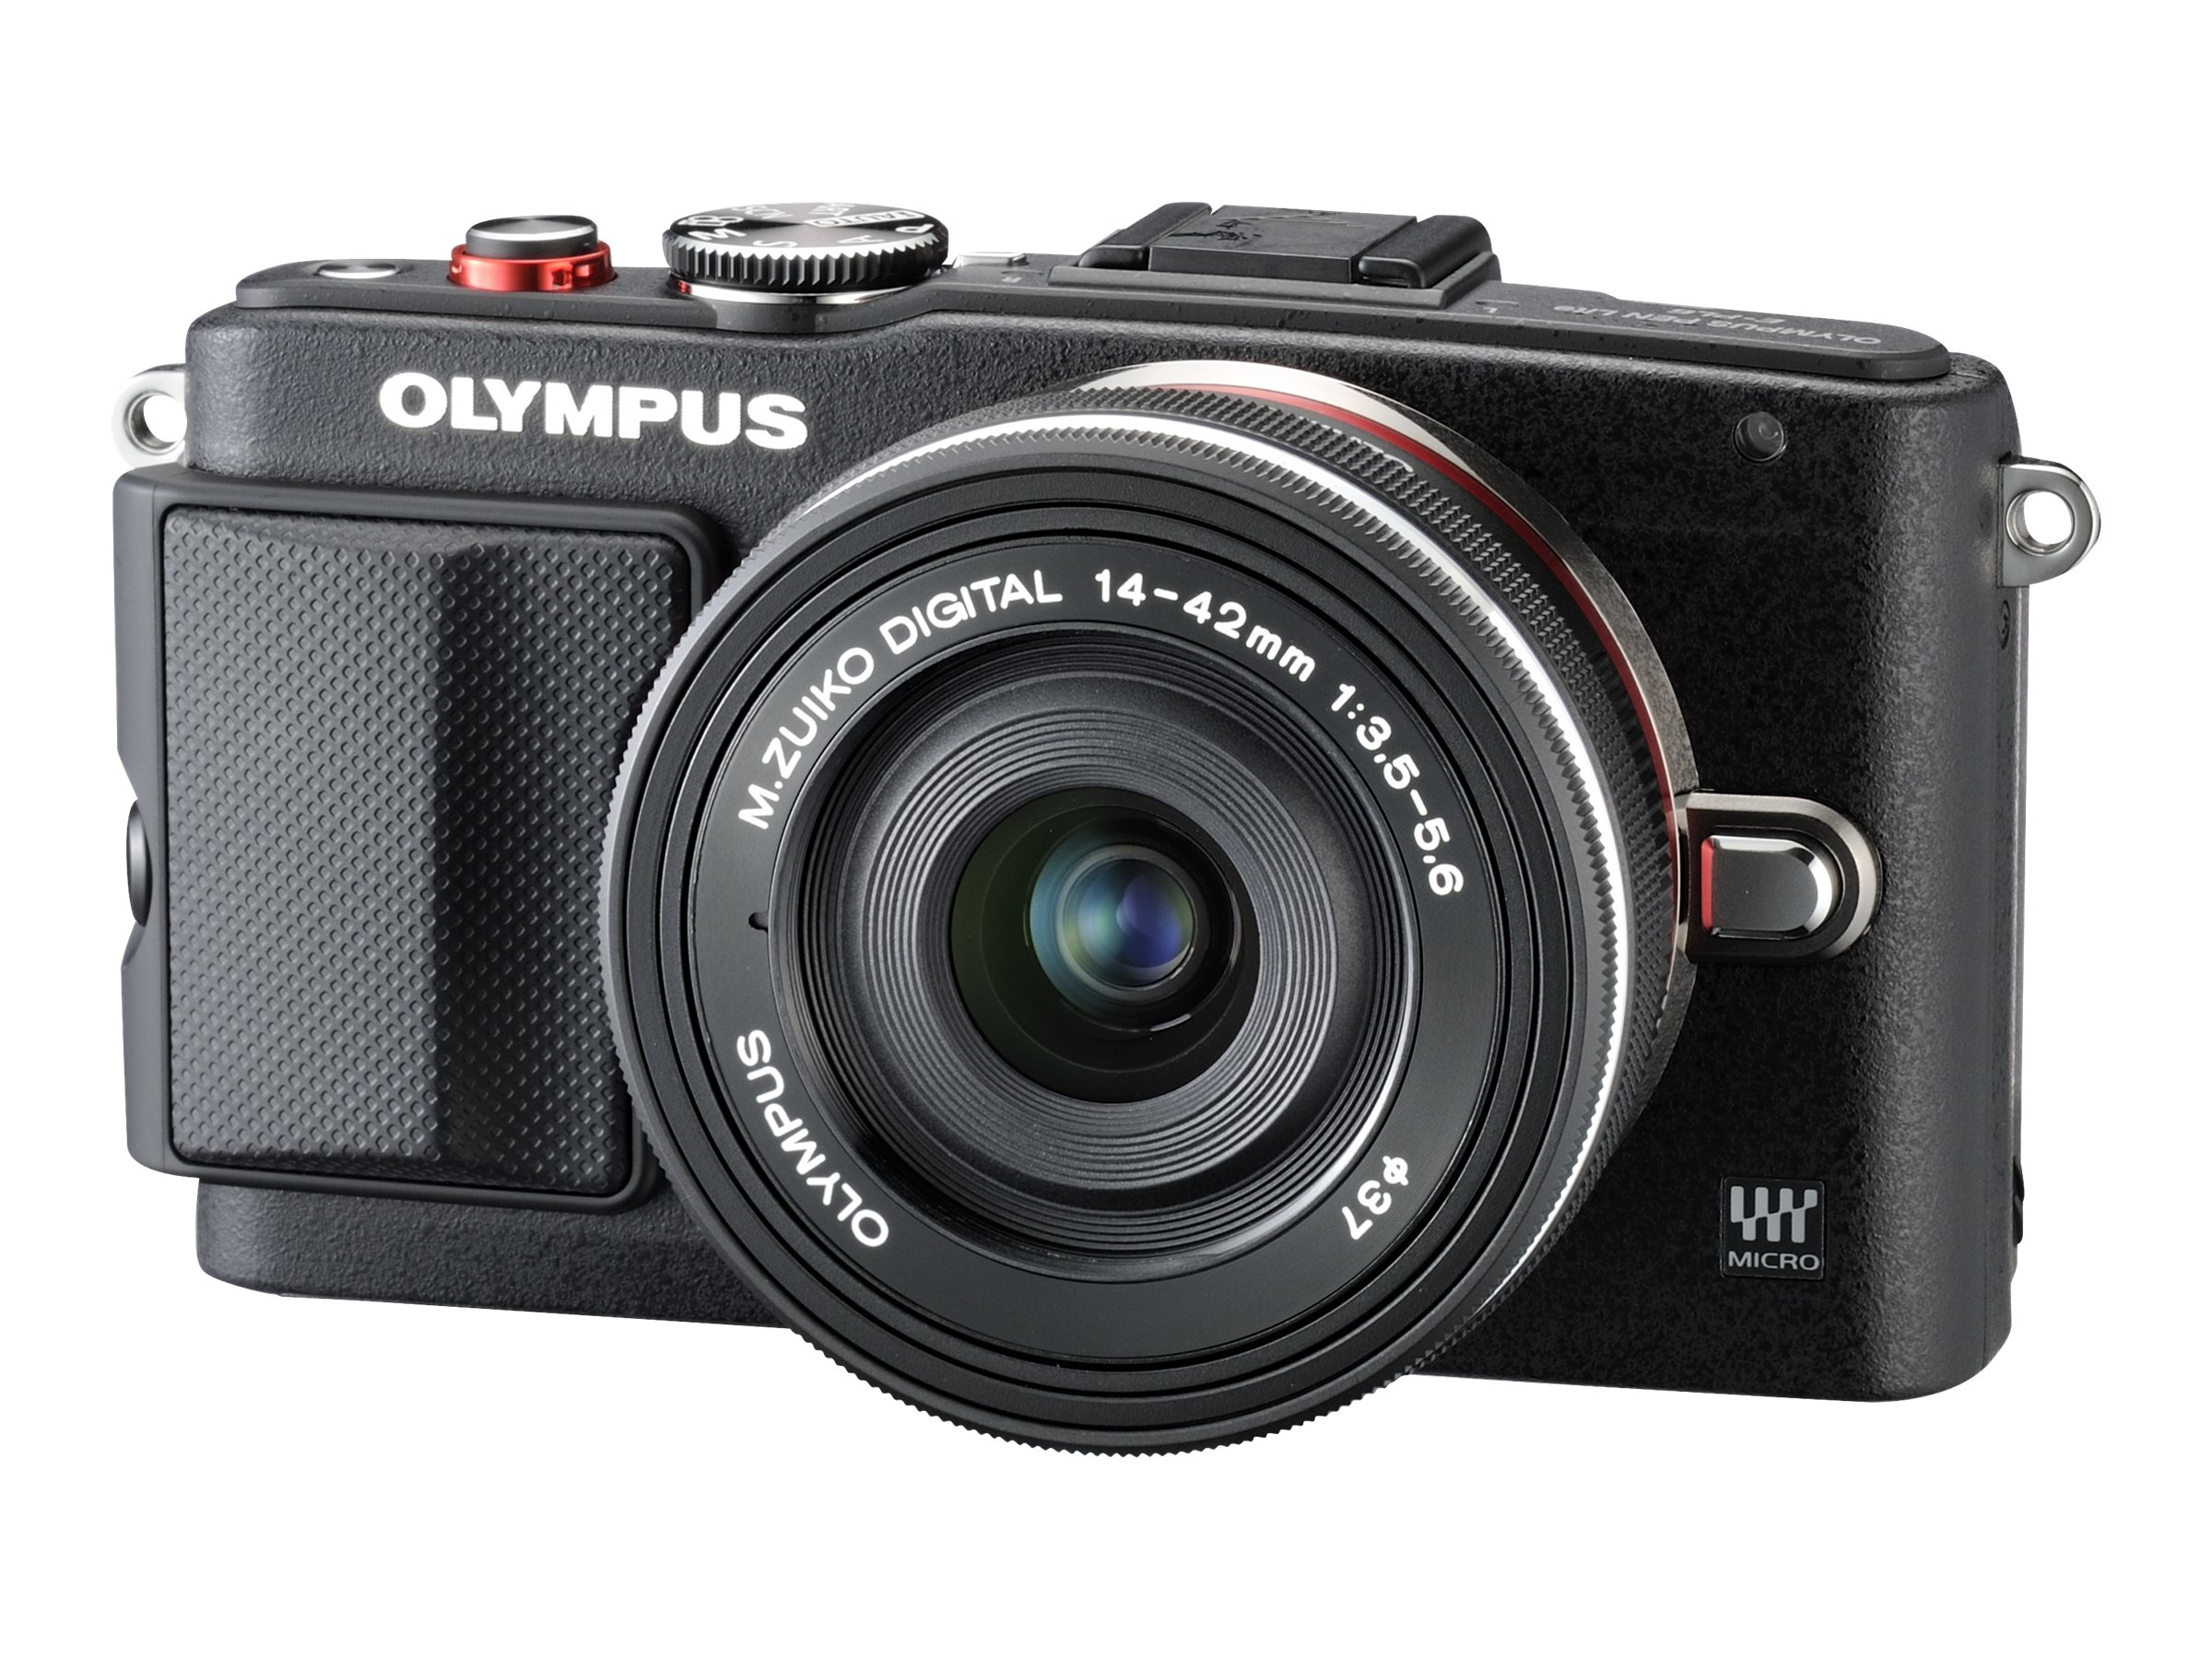 Olympus E-PL6 Mirrorless Digital Camera with 14-42mm f 3.5 II Lens, Black, V205051BU000, 19857979, Cameras - Digital - SLR